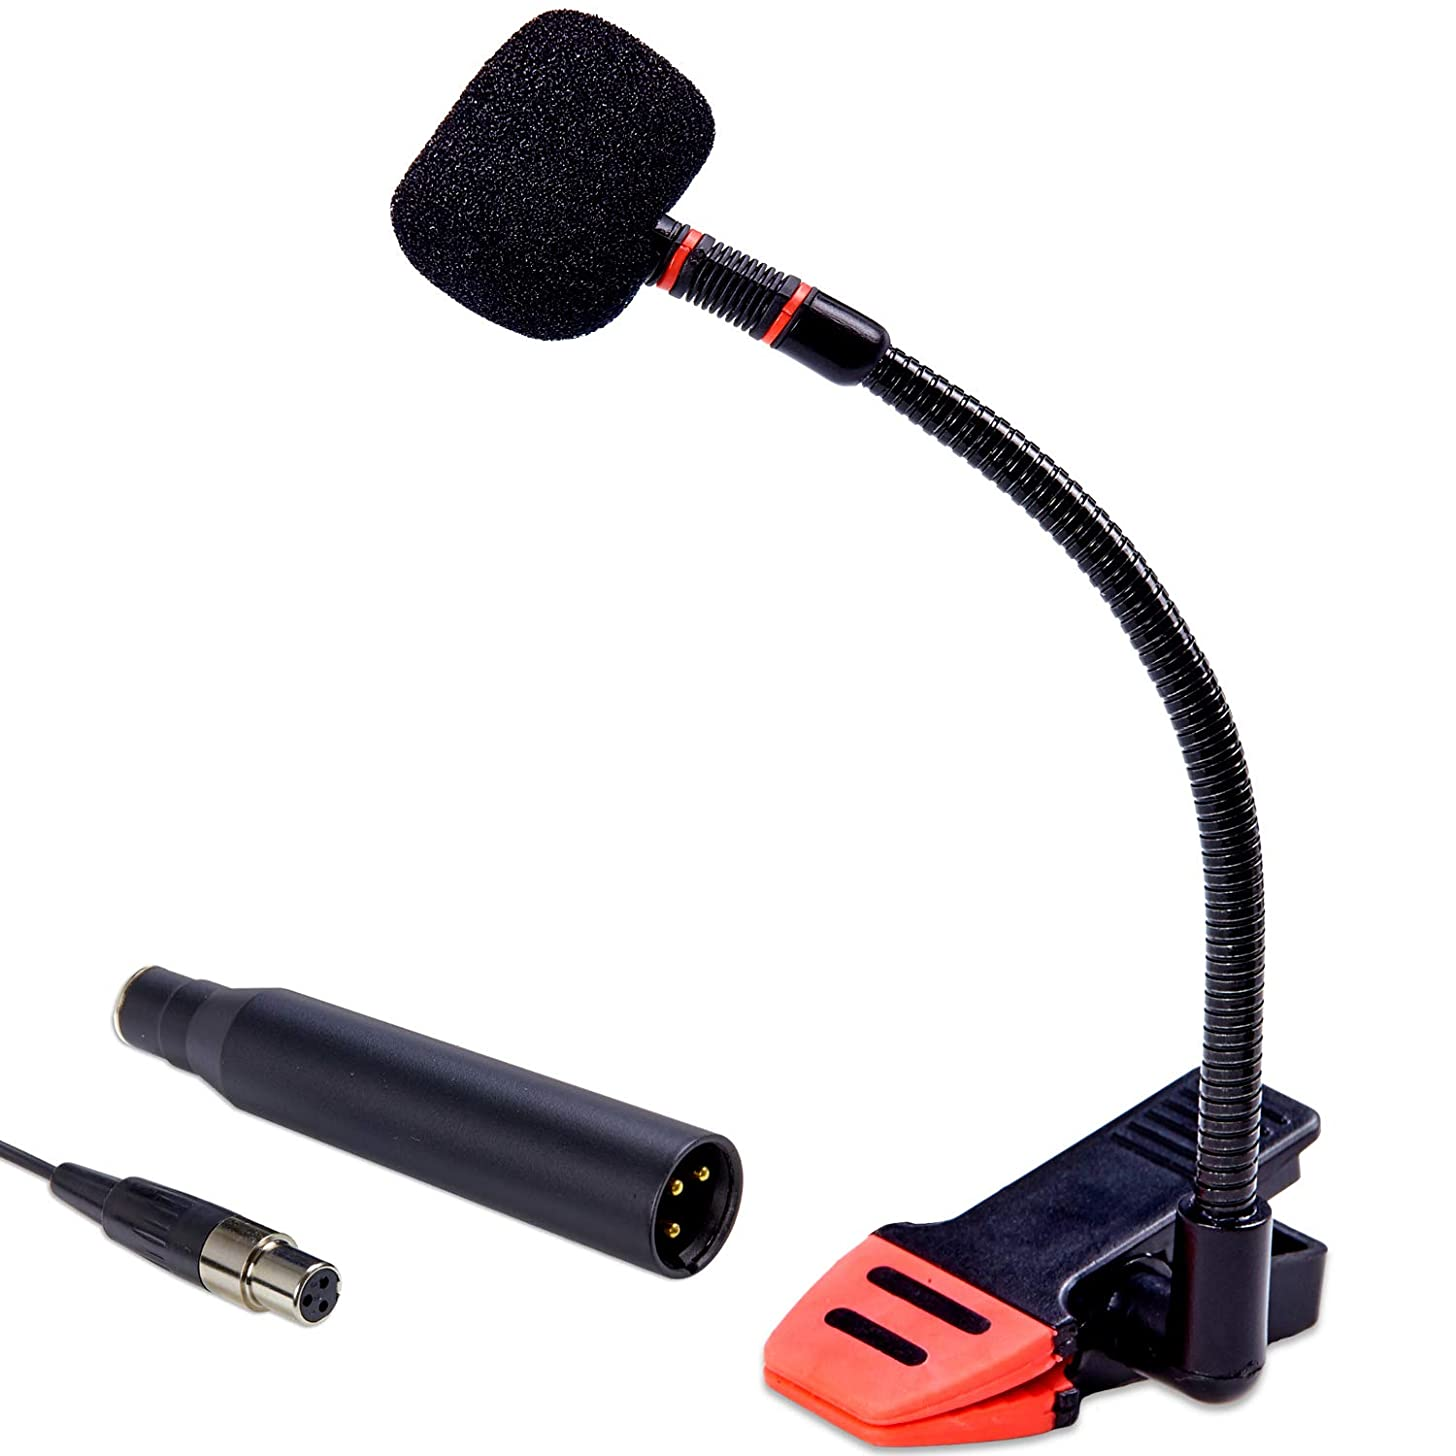 Knox Clip-On Gooseneck Instrument Microphone – Condenser Mic for Sax, Clarinet, Trumpet and Percussion – Rubberized Clip, Flexible Neck, Mini XLR Input with XLR Adapter